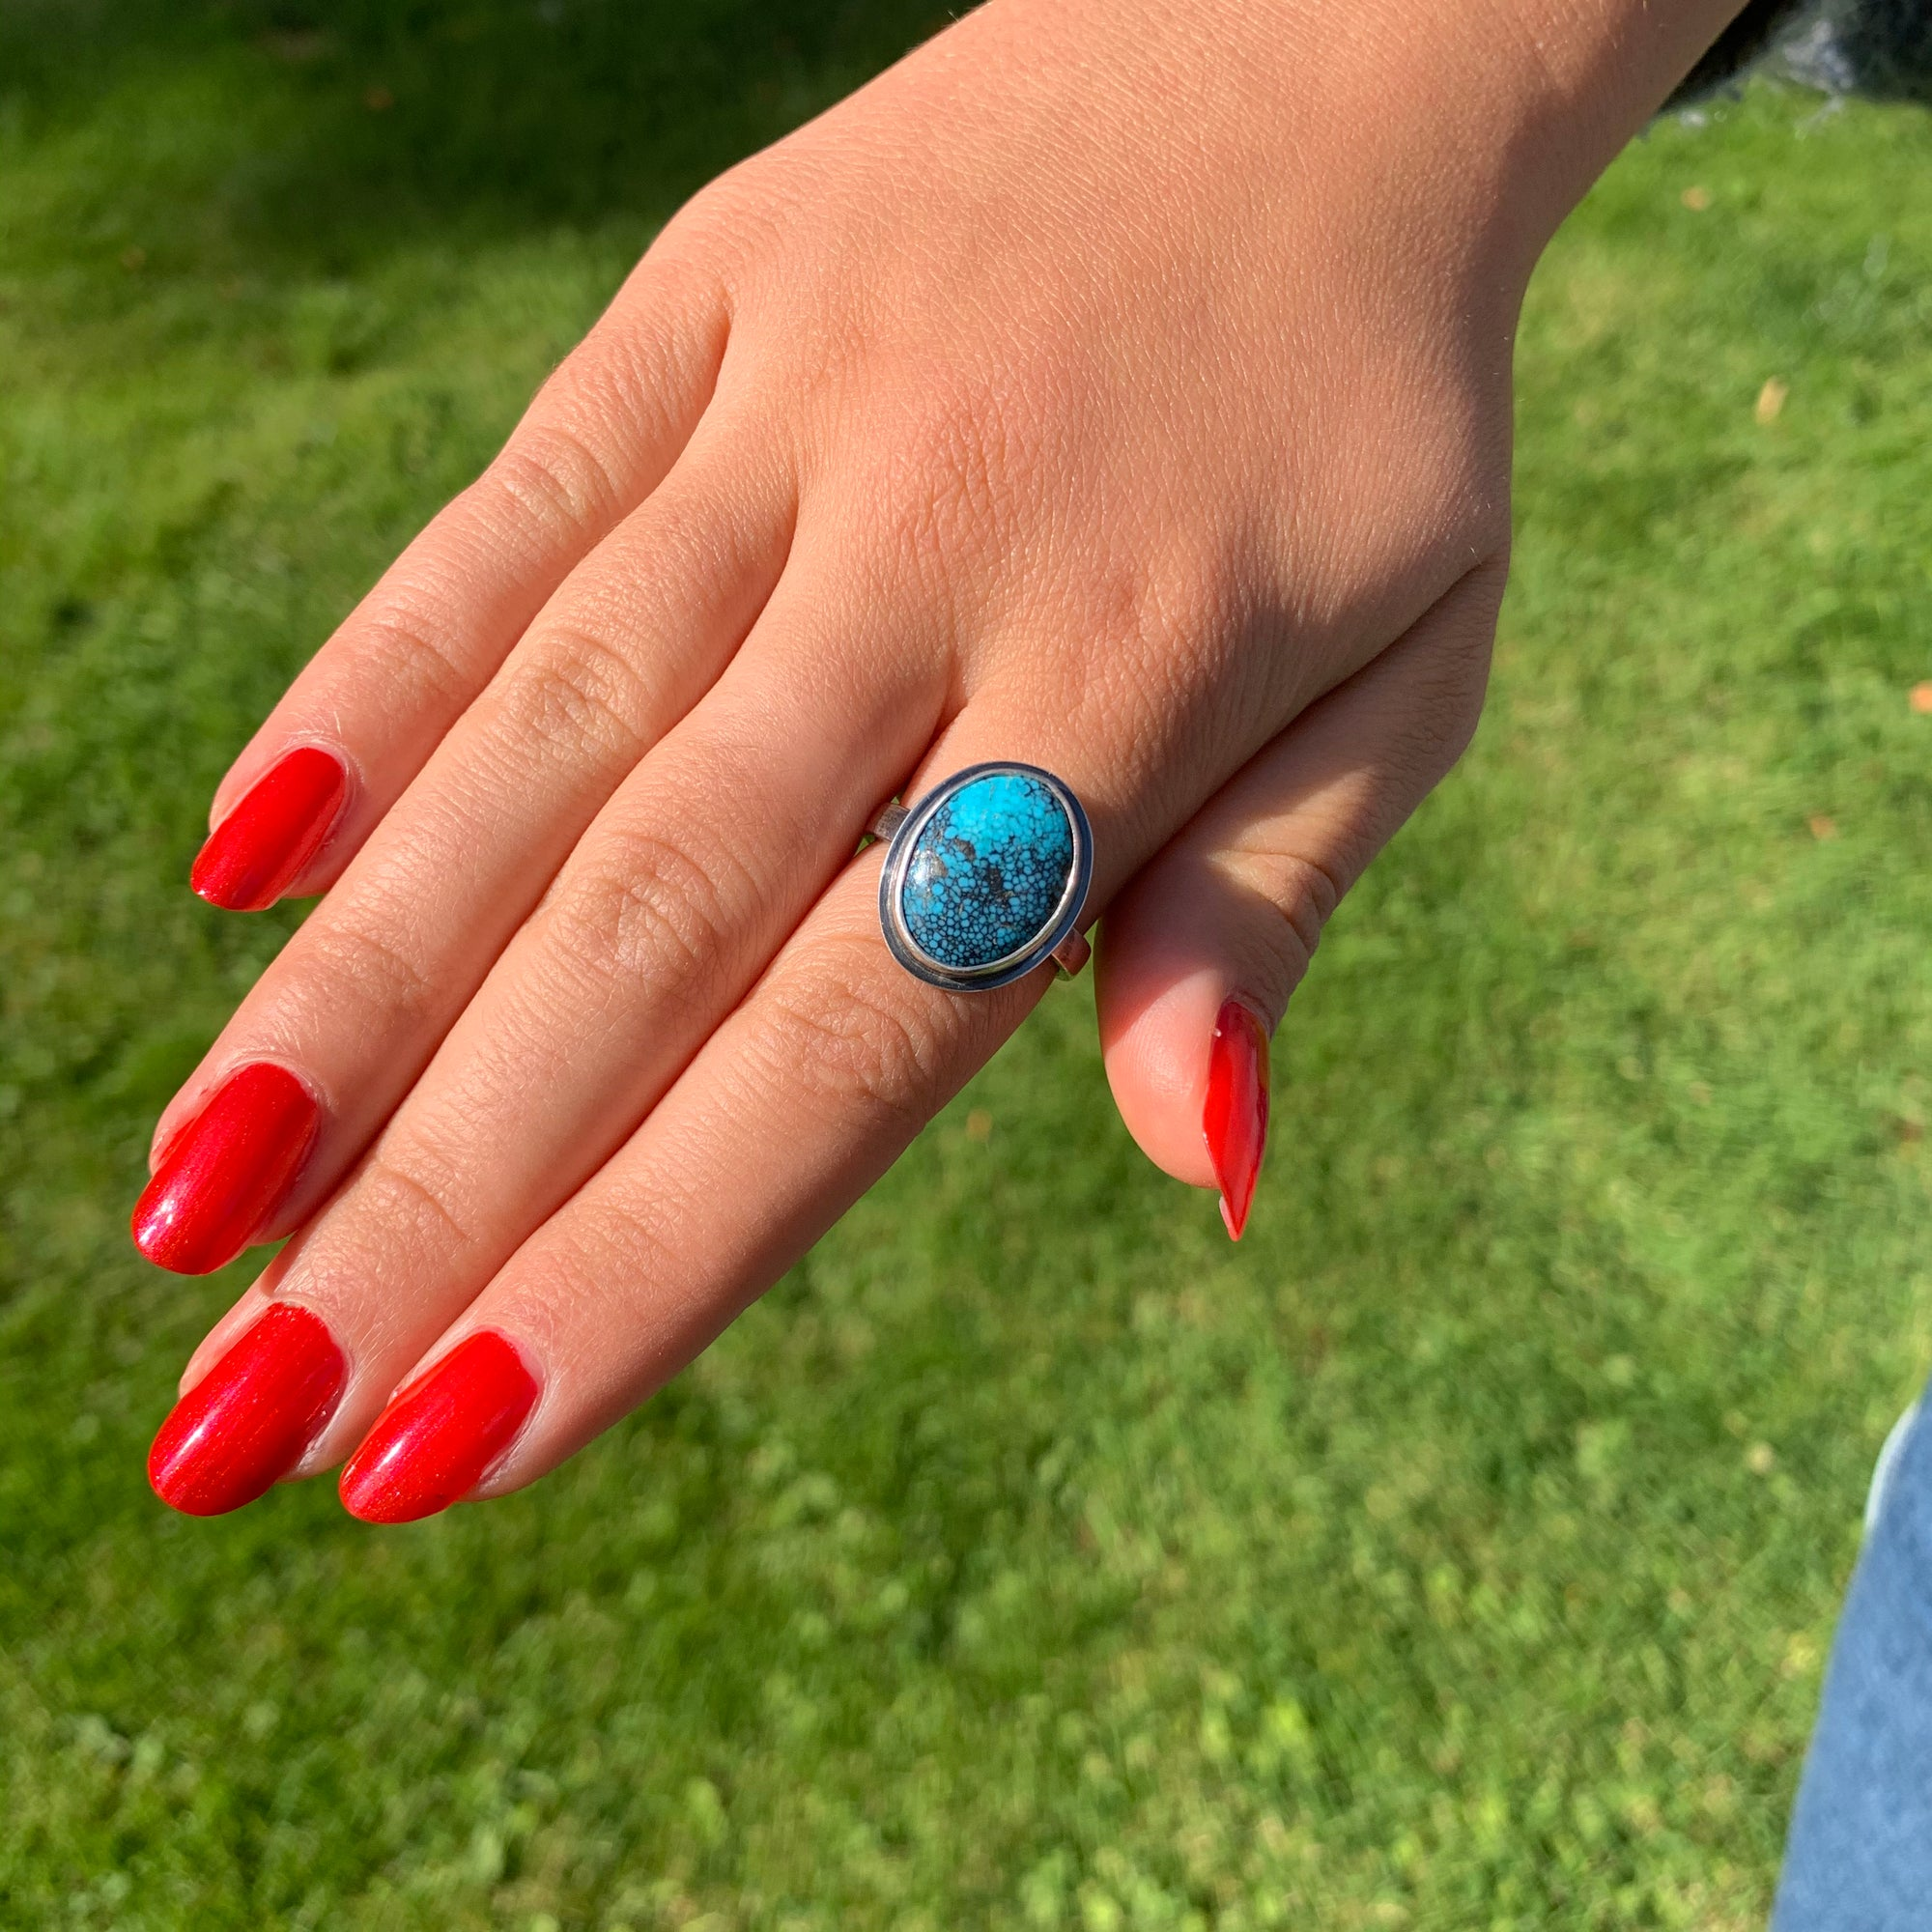 Glowing Blue Black Silver Ring - Size UK P - US 7 3/4